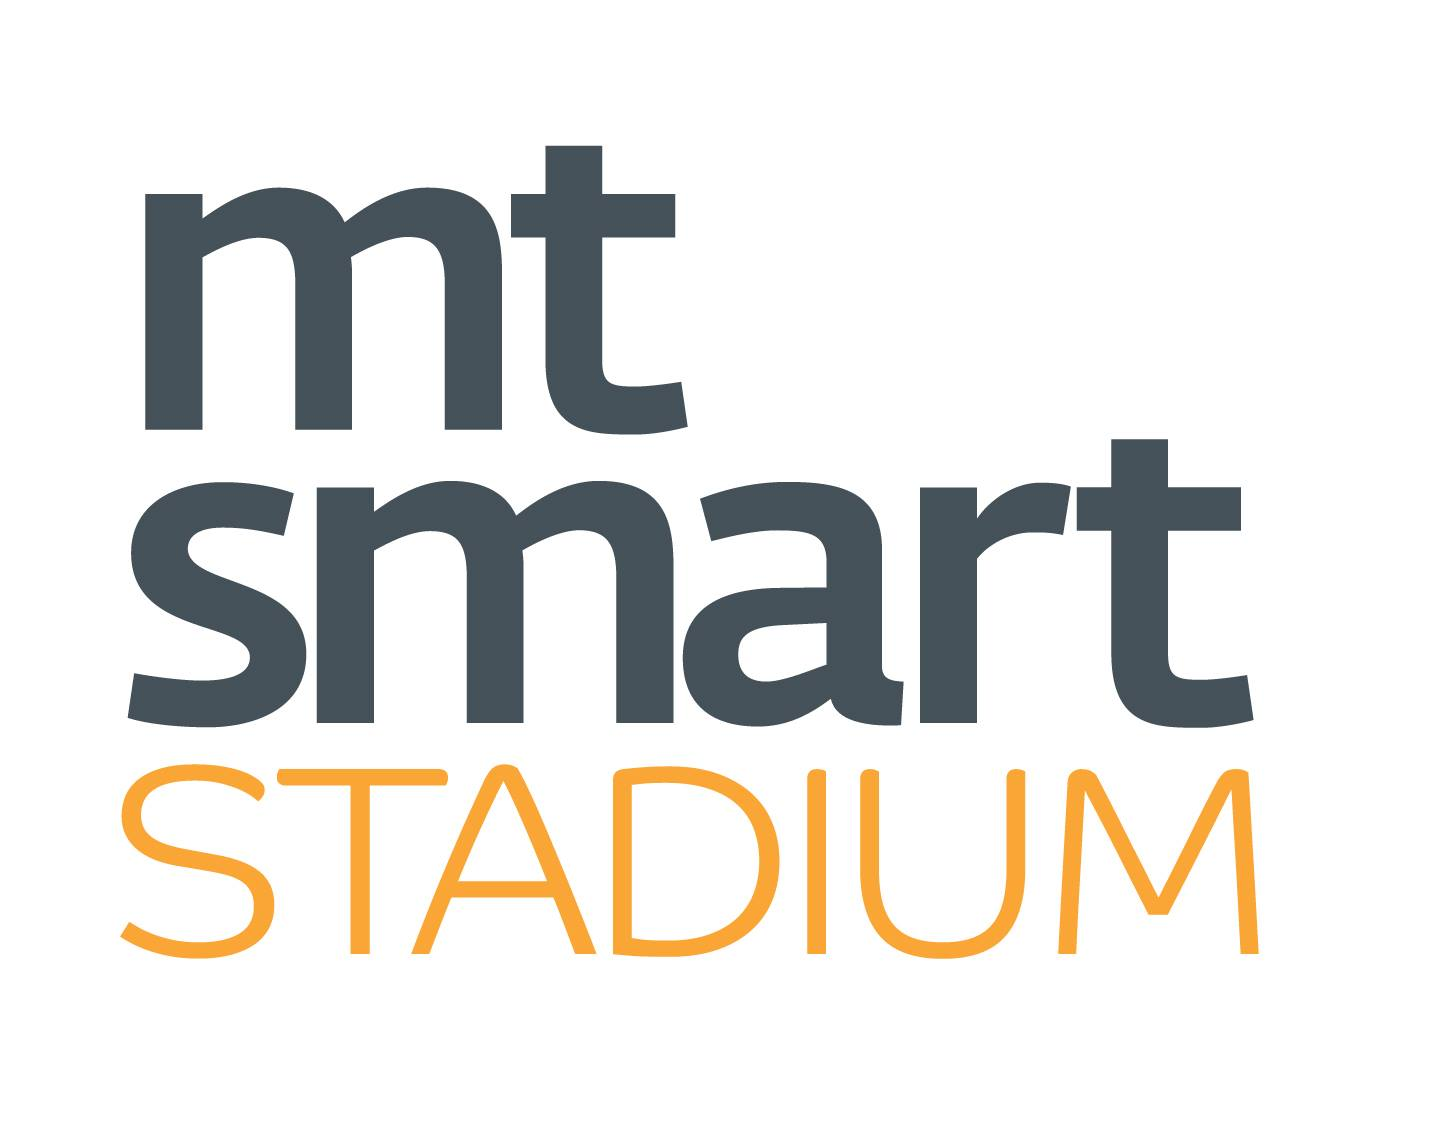 https://rfacdn.nz/stadiums/assets/media/mt-smart-stadium-logo.jpg